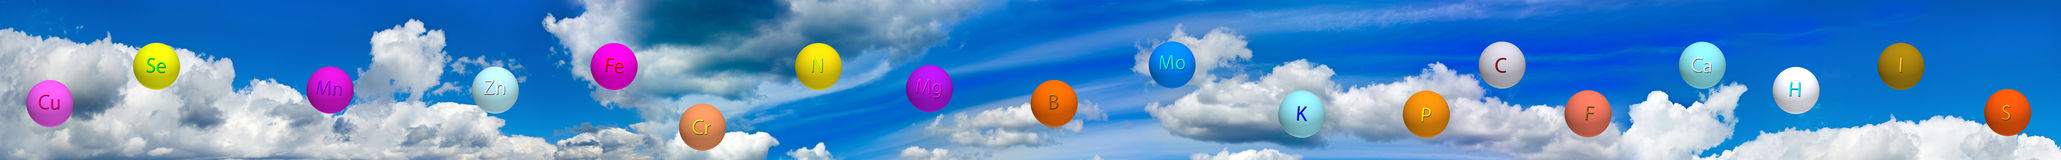 Stylized balls with vitamins against the sky close up Royalty Free Stock Photography